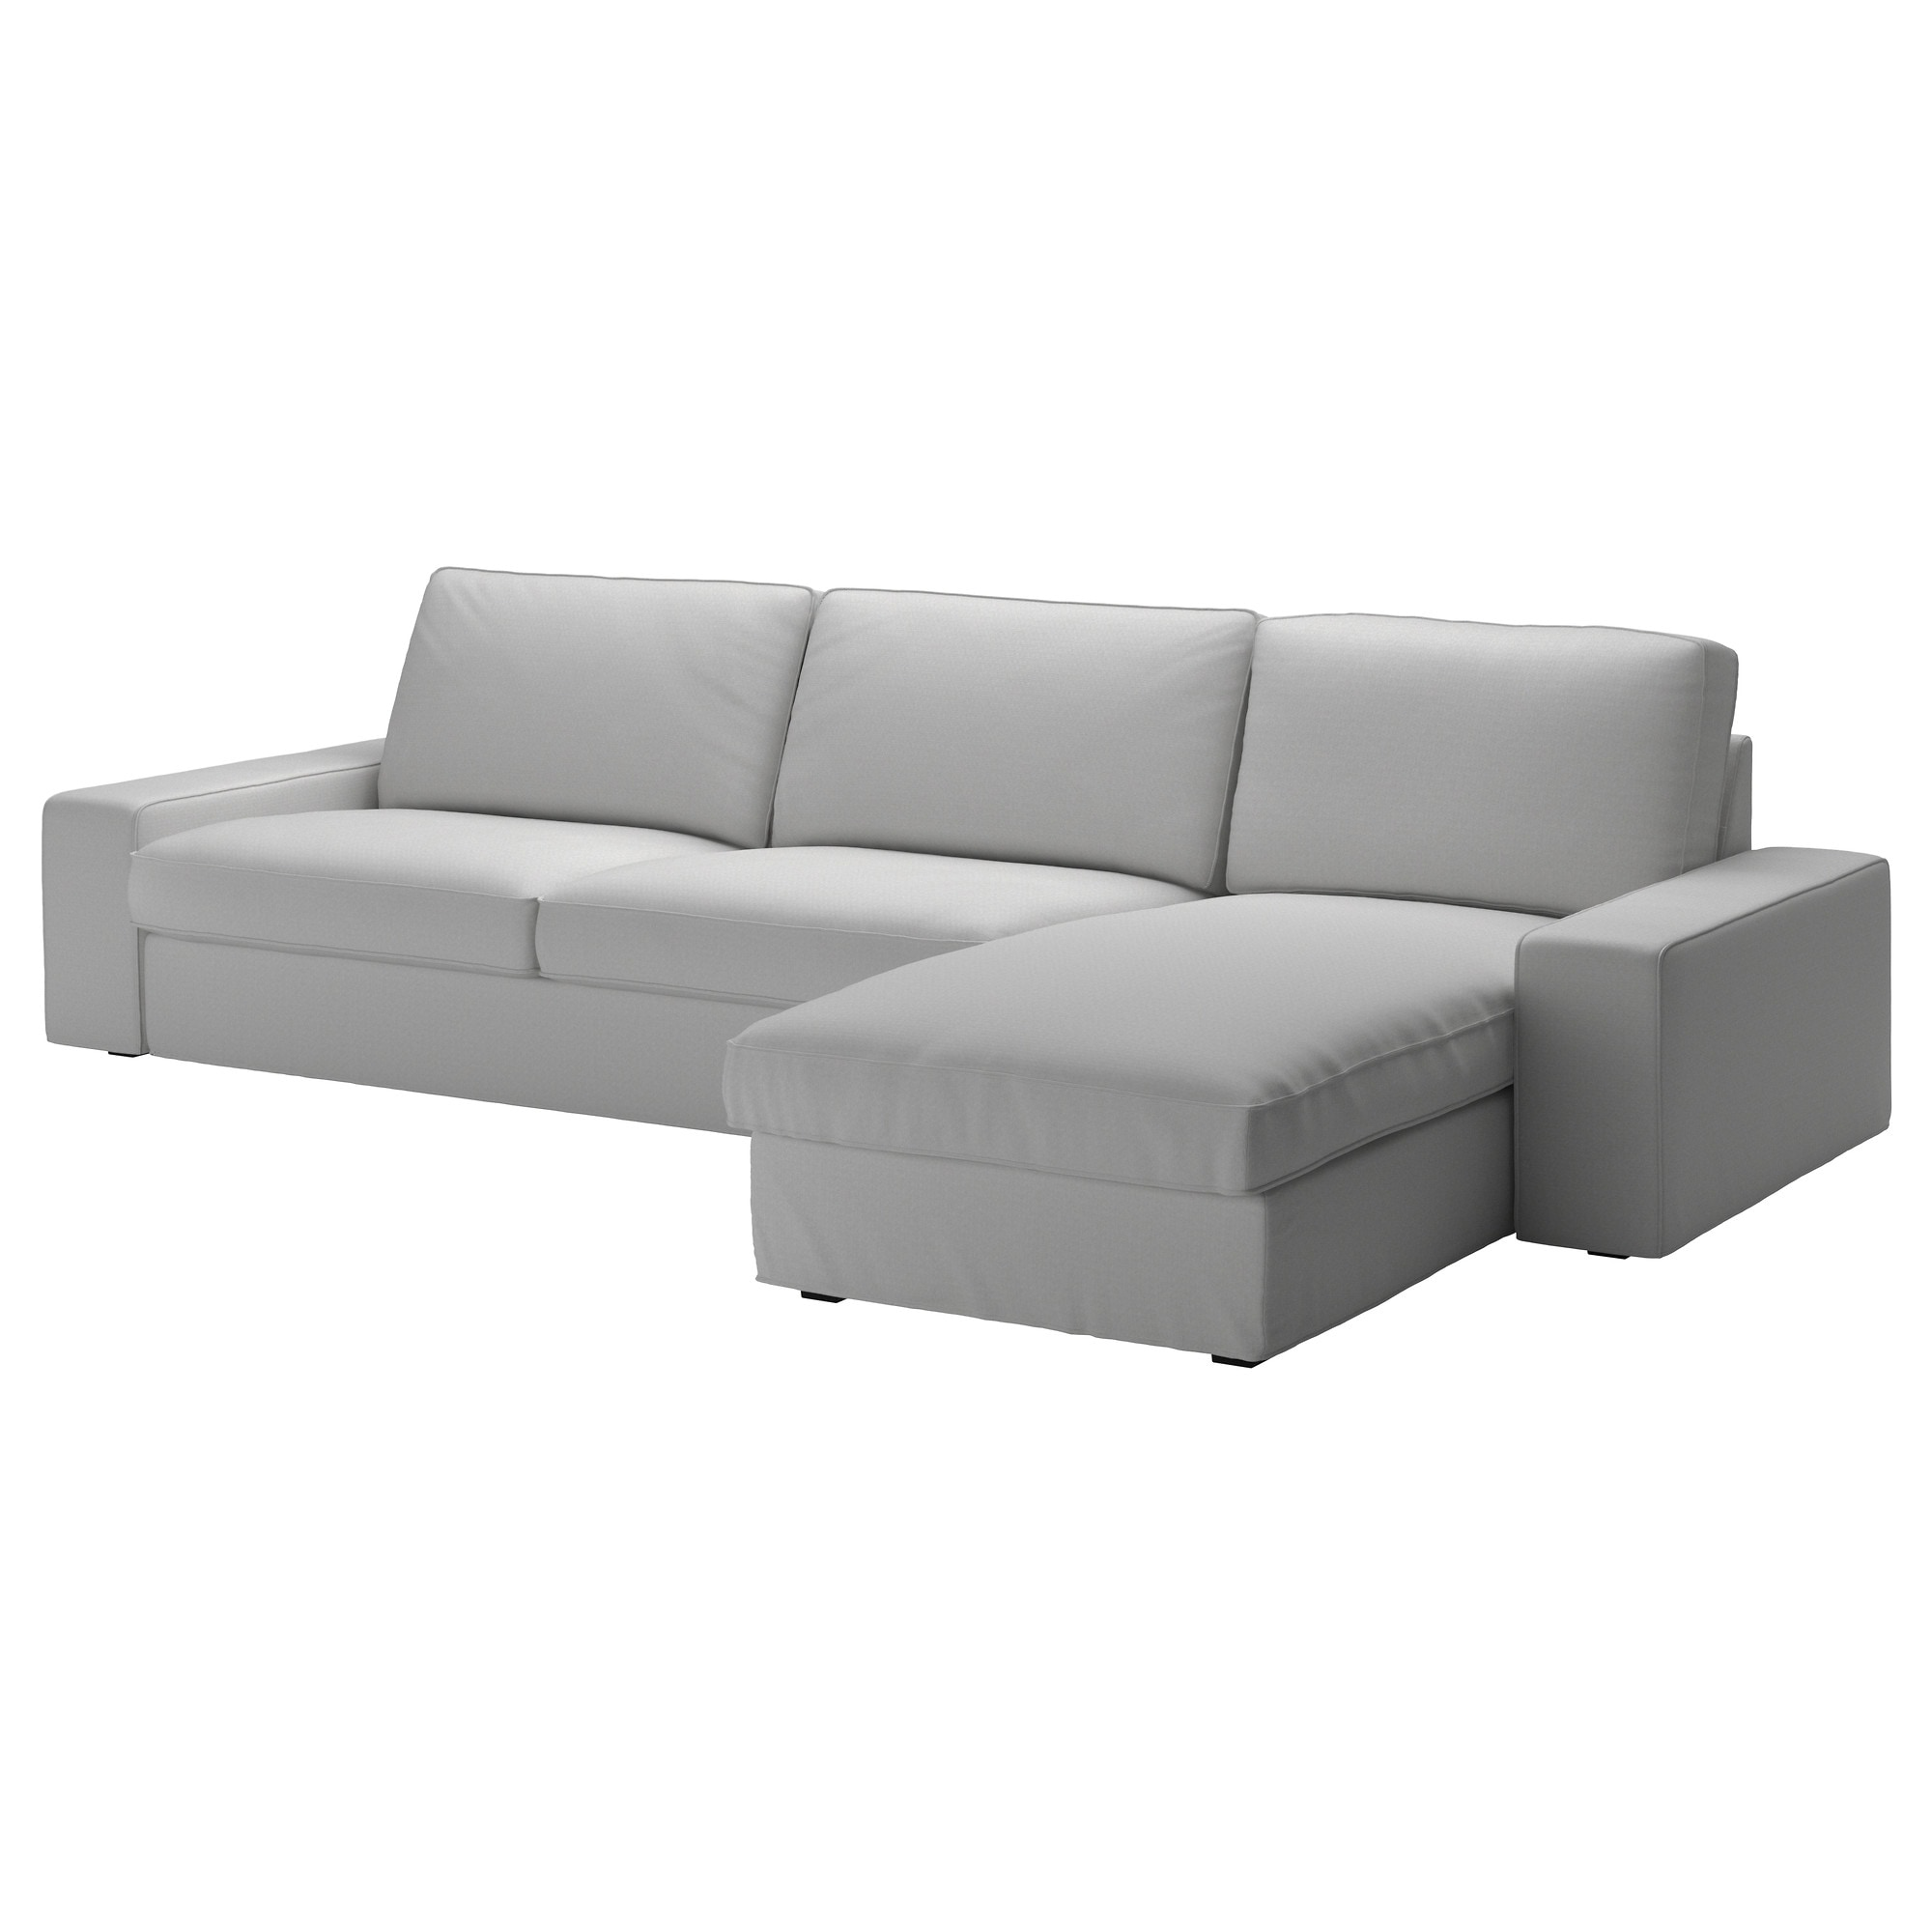 Sofa ikea  KIVIK Sectional, 4-seat - Orrsta light gray - IKEA